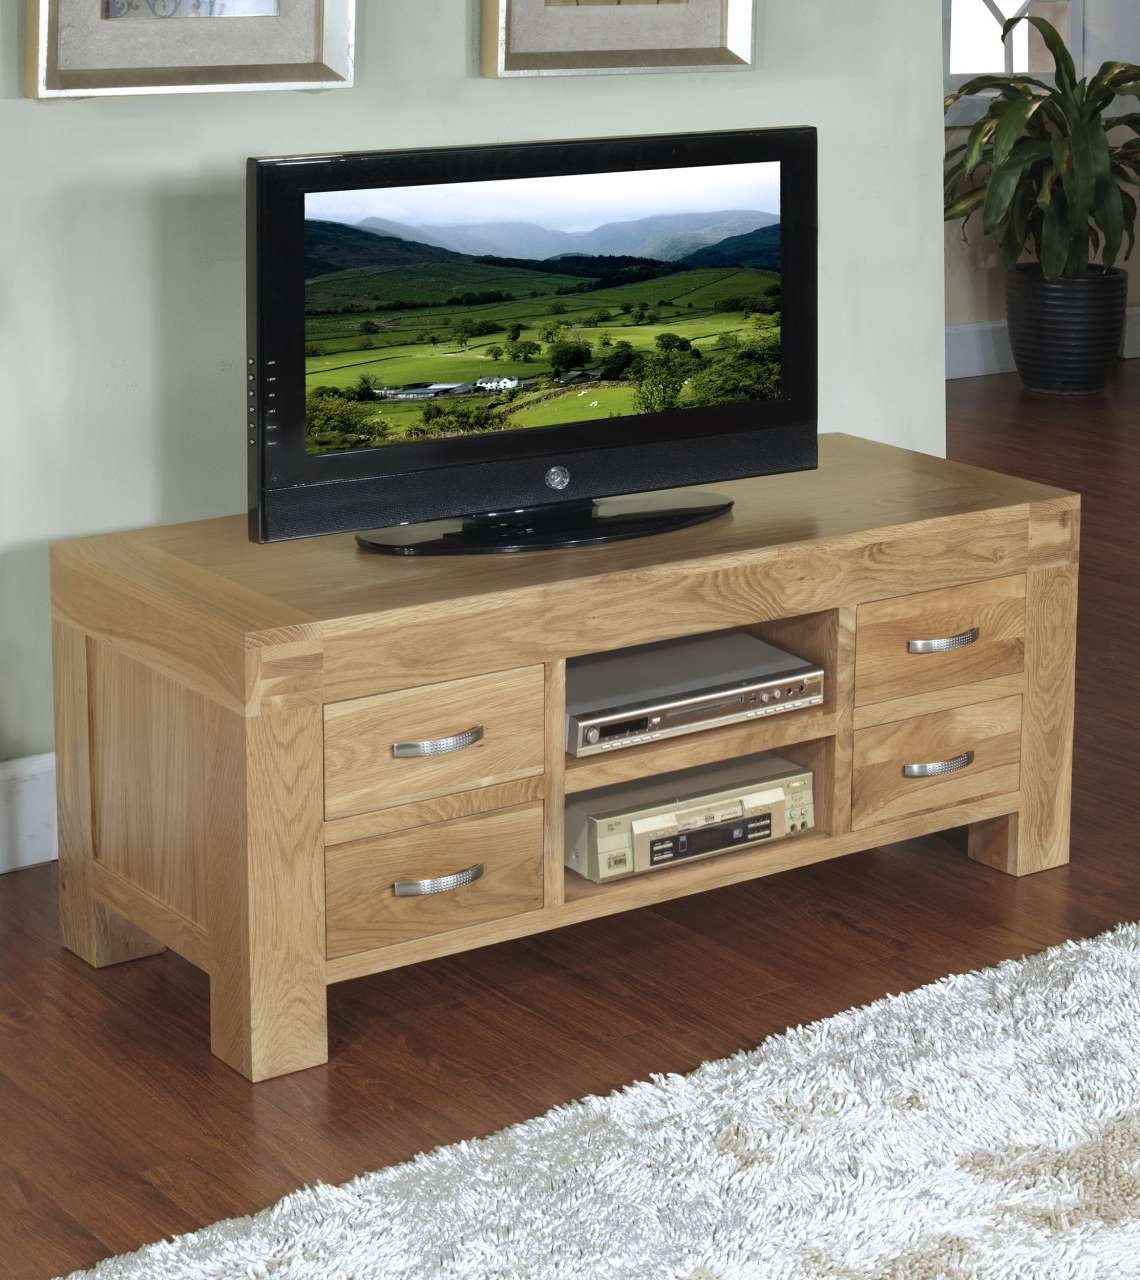 Tv Stands : Awesome Solid Wood Tv Stand Pictures Design With Inside Cheap Oak Tv Stands (View 14 of 15)